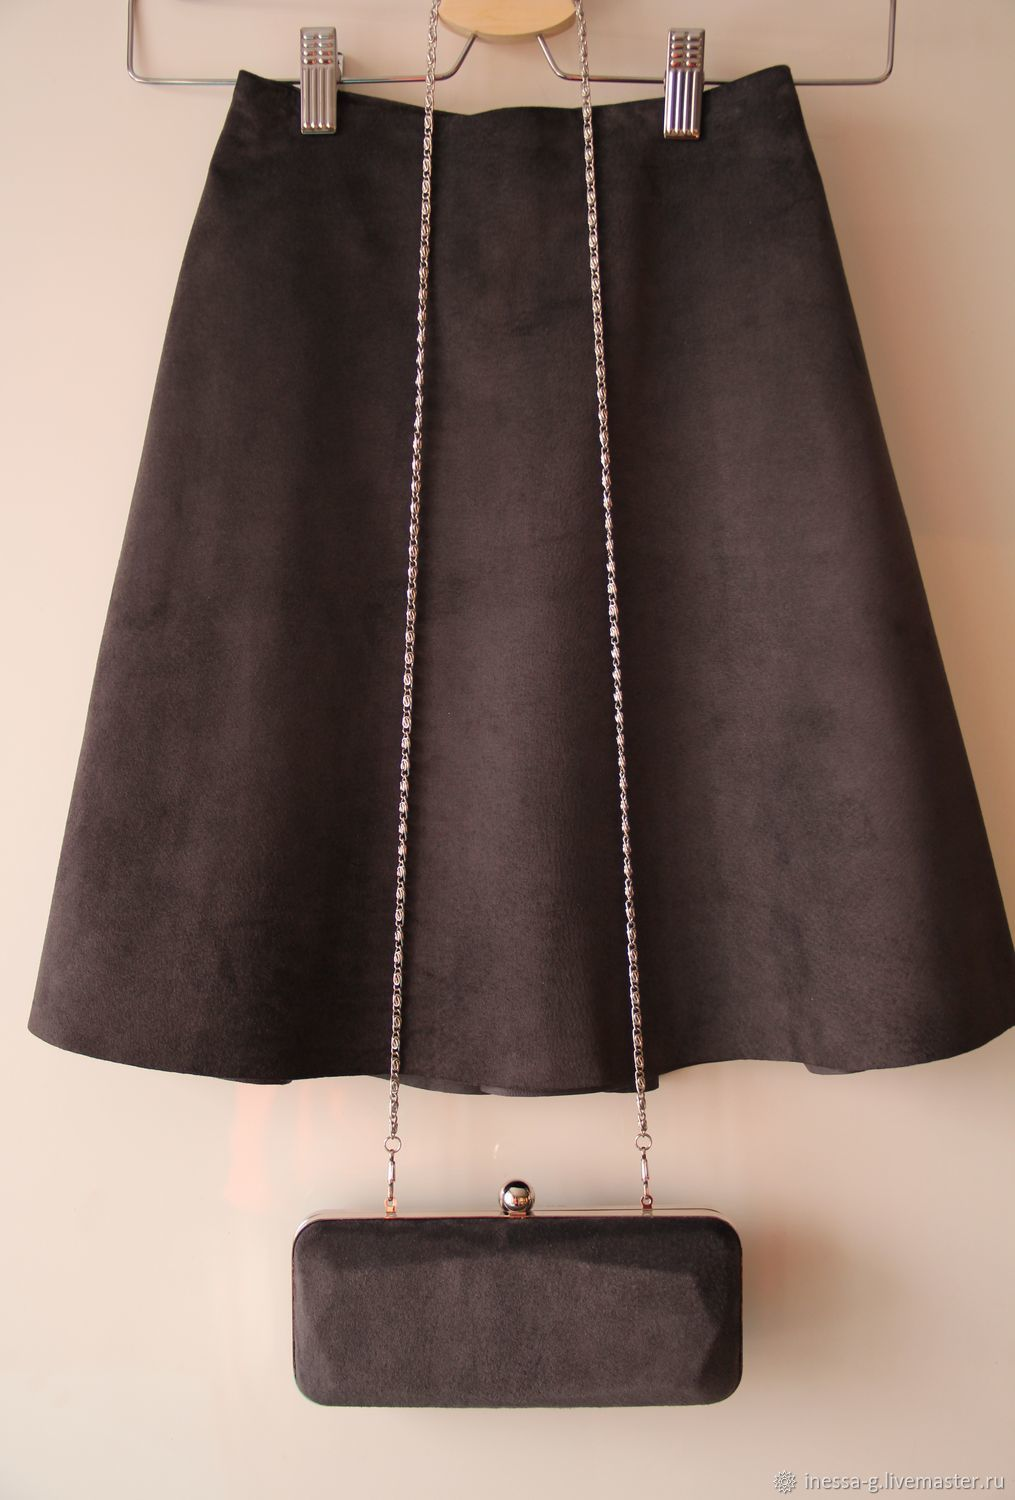 Suede skirt the color of dark chocolate, Skirts, Moscow,  Фото №1